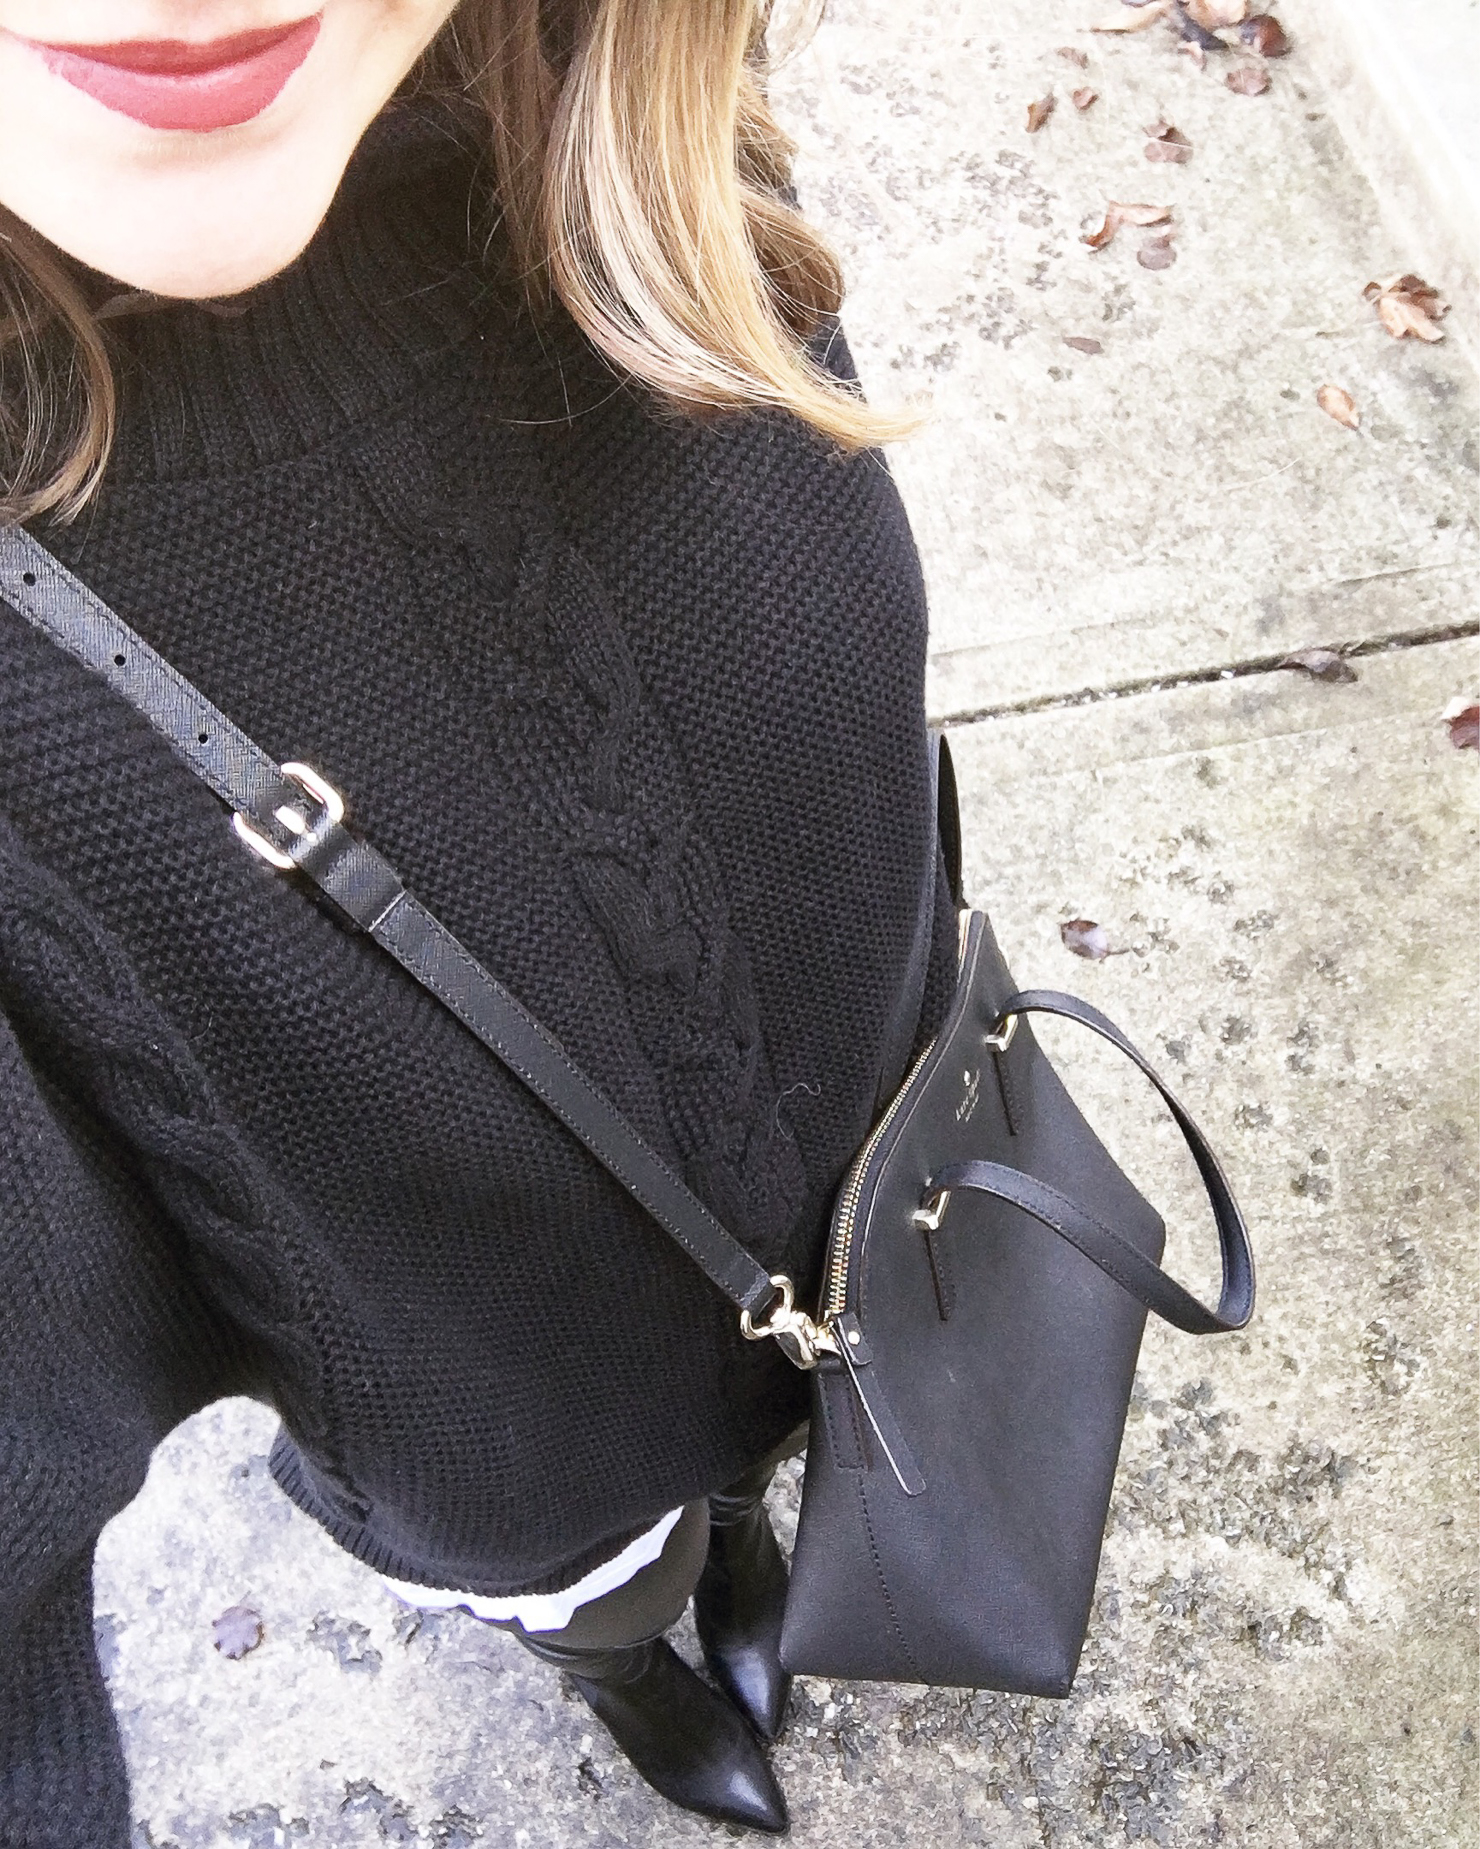 instagram-monochromatic-black-outfit-leather-leggings-kate-spade-cedar-maise